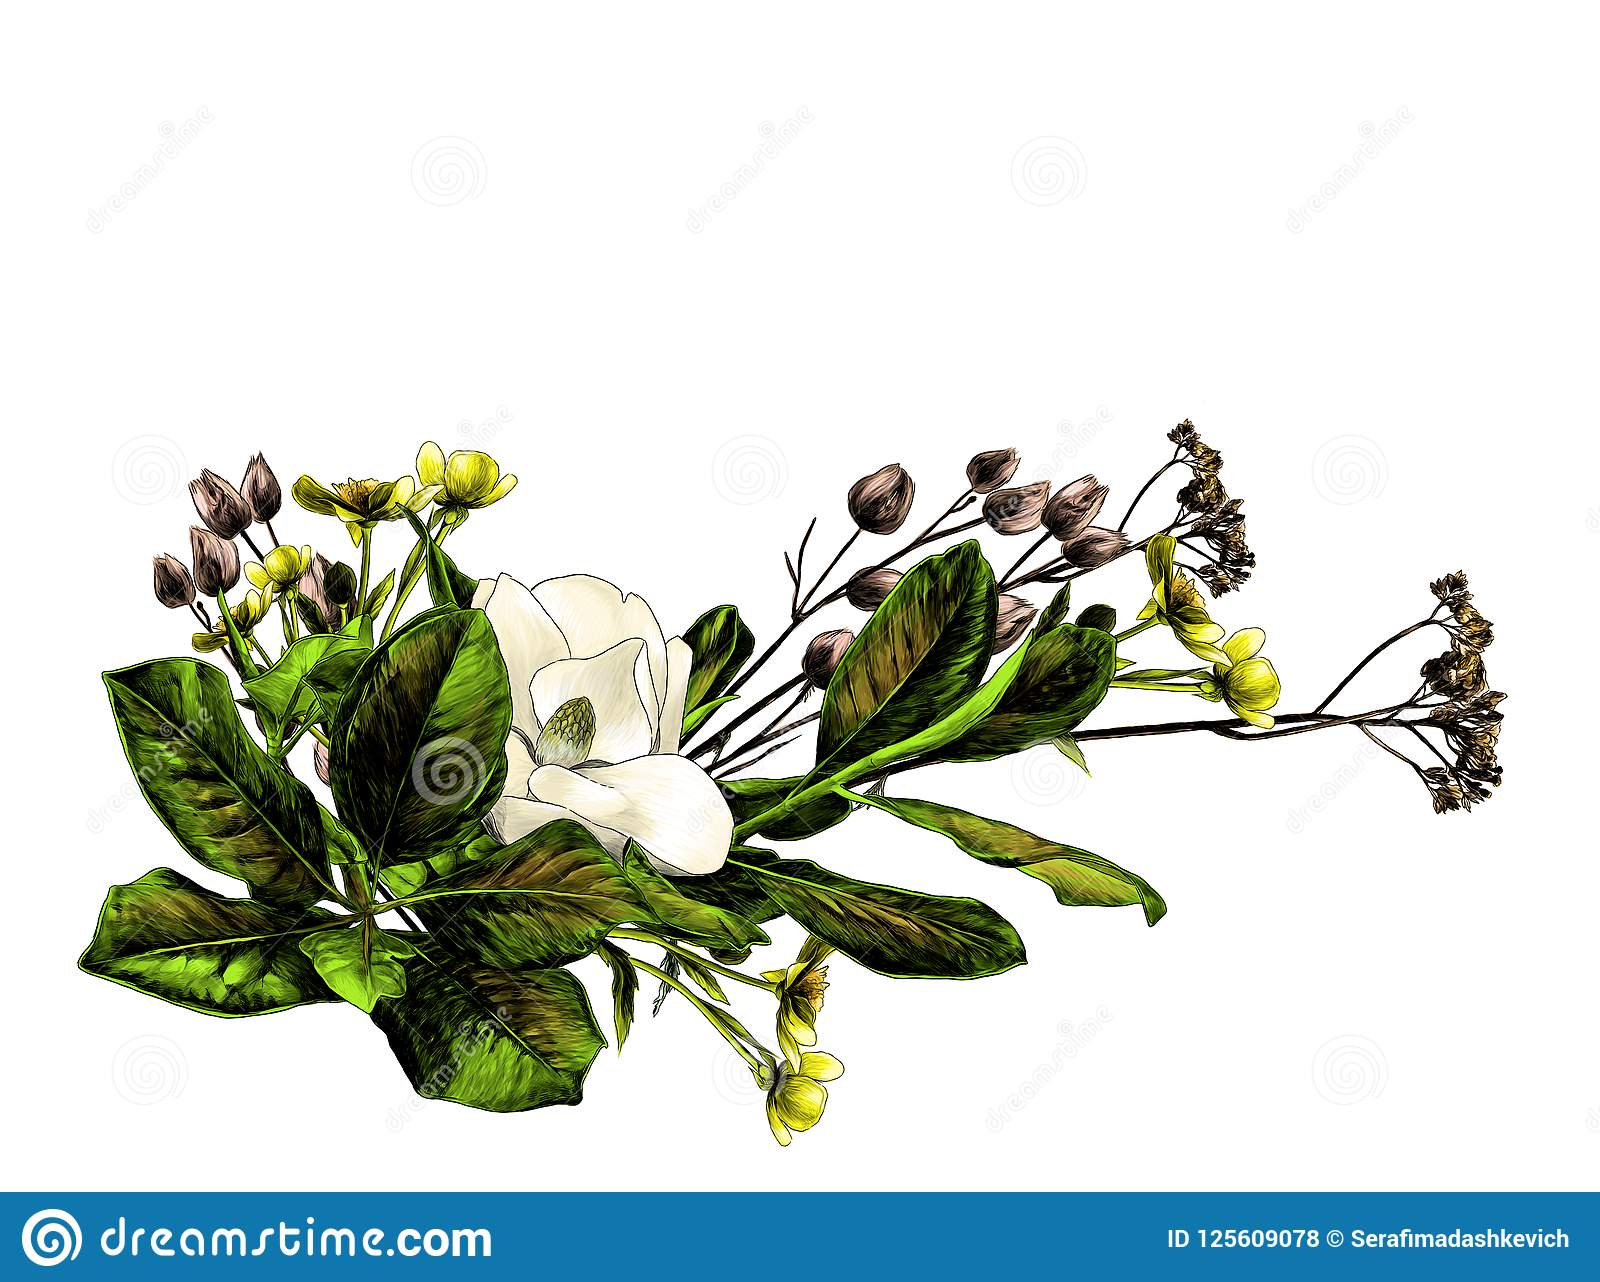 Flower Arrangement Of Magnolia Branches And Dry Grass Stock Vector Illustration Of Branch Graphics 125609078